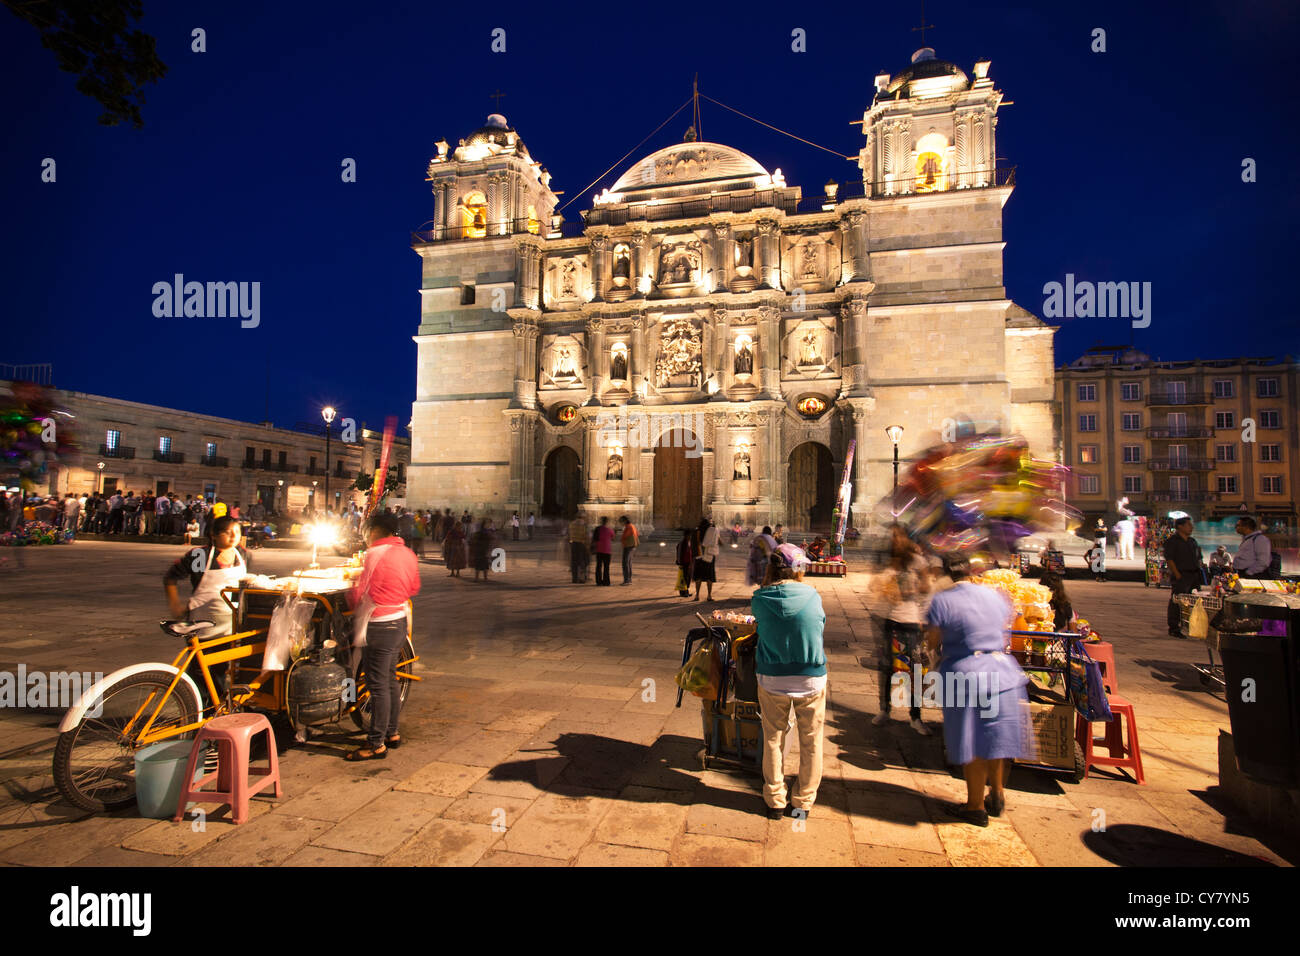 Vendors in front of the cathedral in Oaxaca, Mexico. - Stock Image